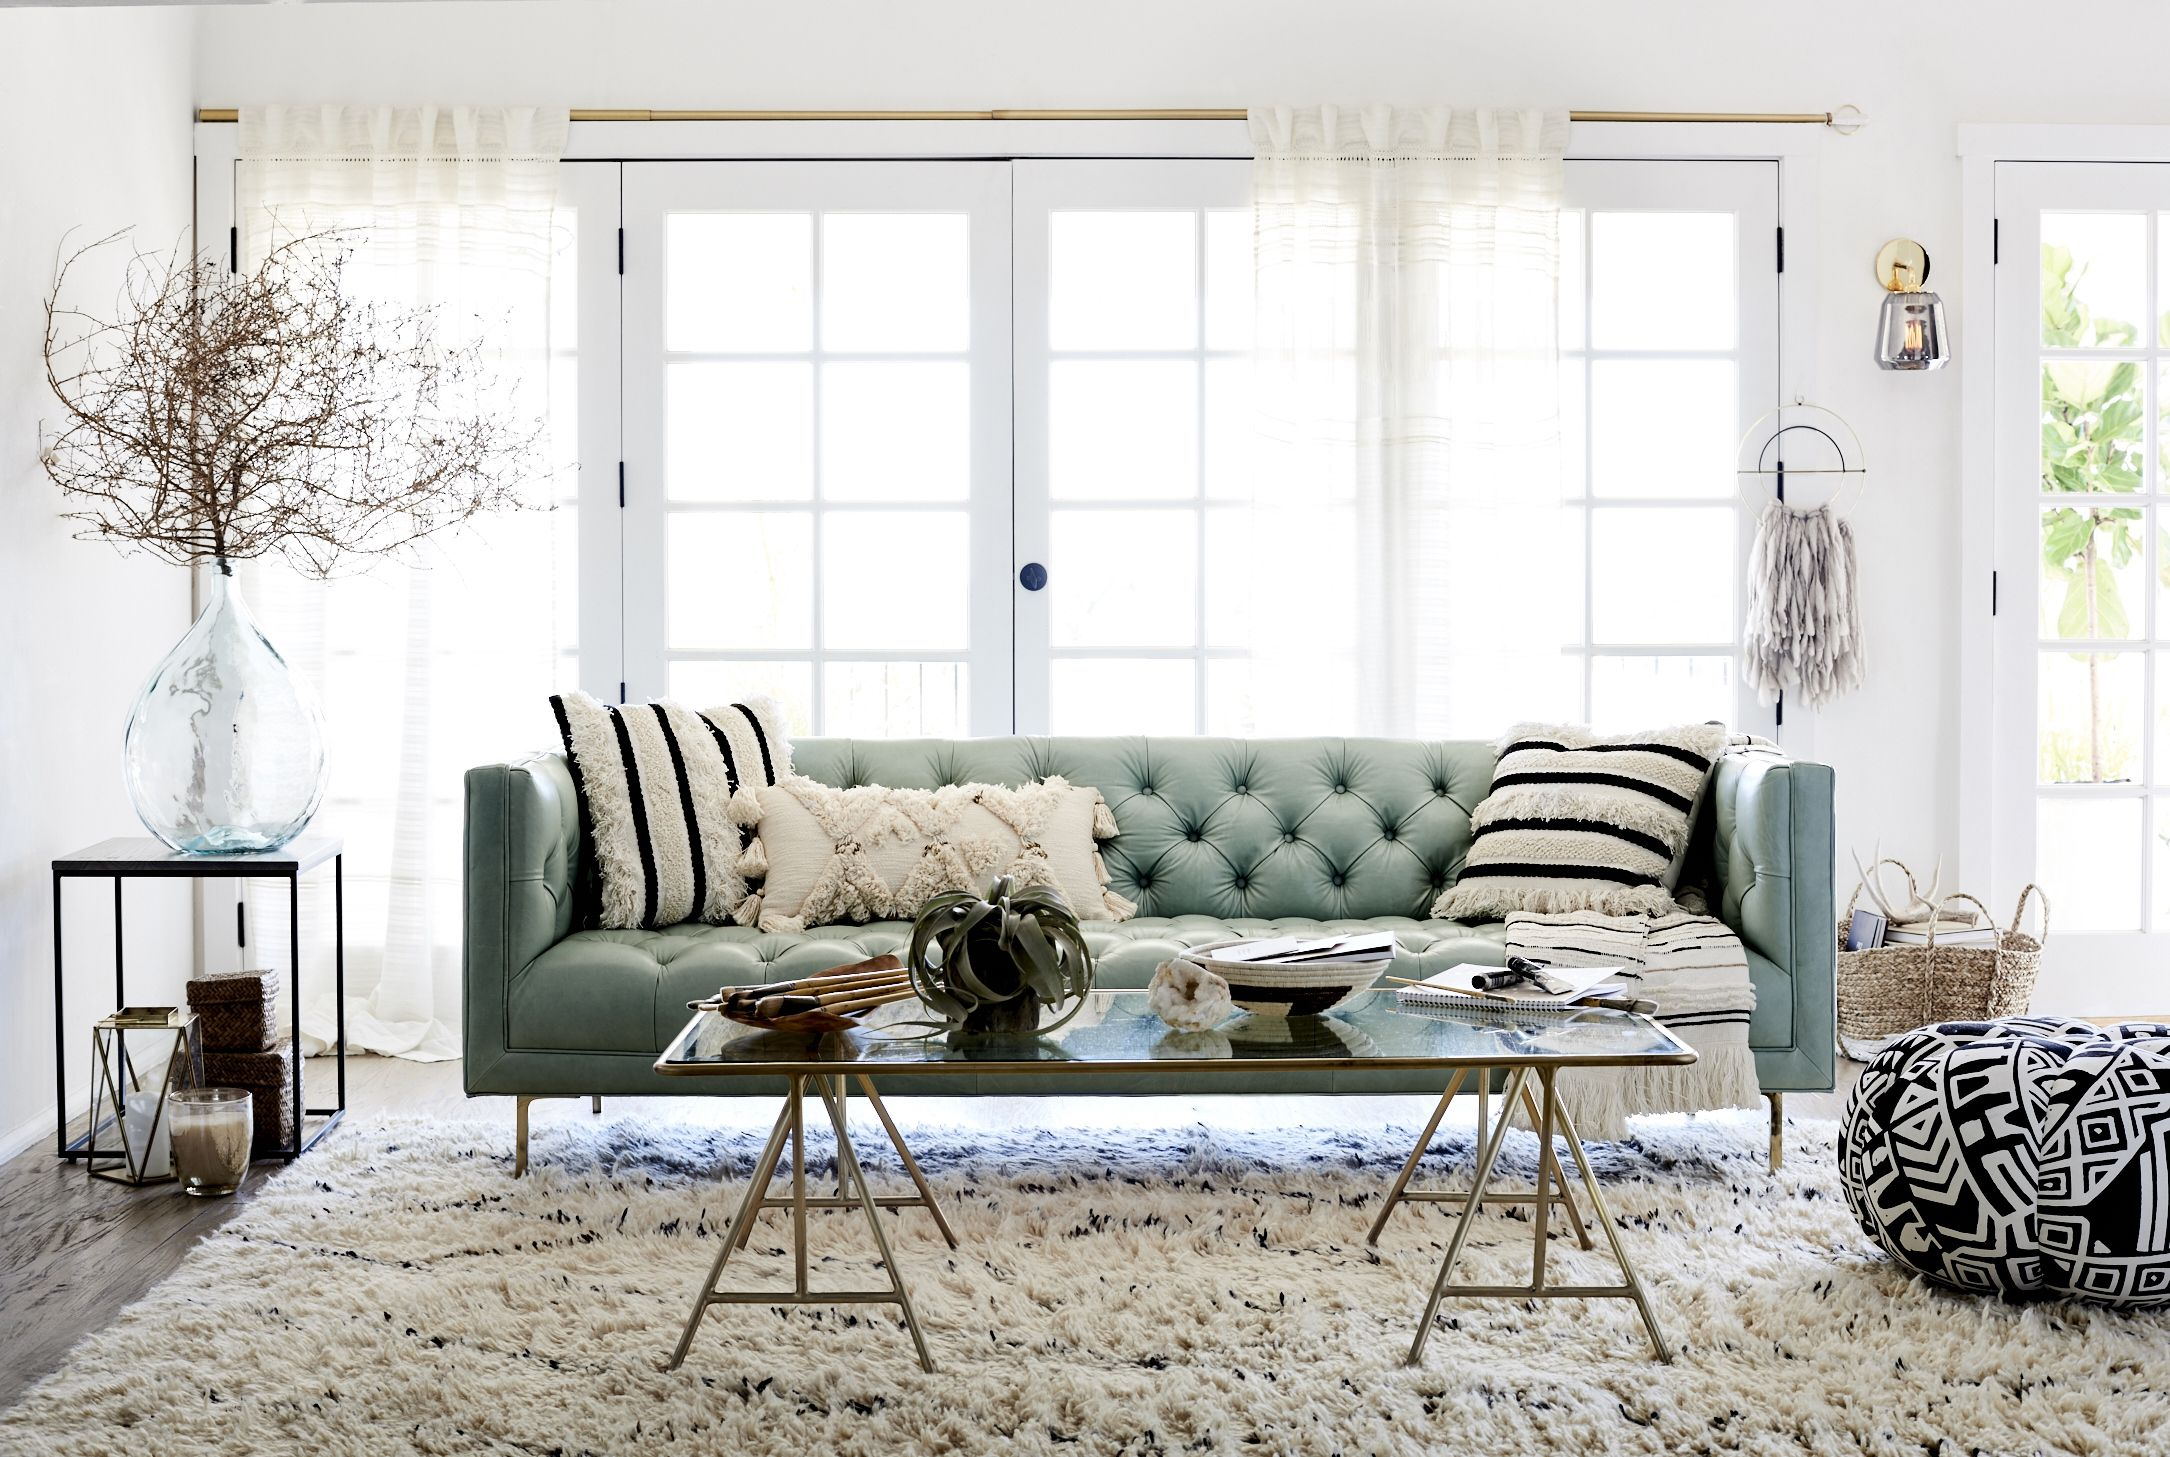 anthropologie living room ideas nagpurentrepreneurs within rh pinterest at